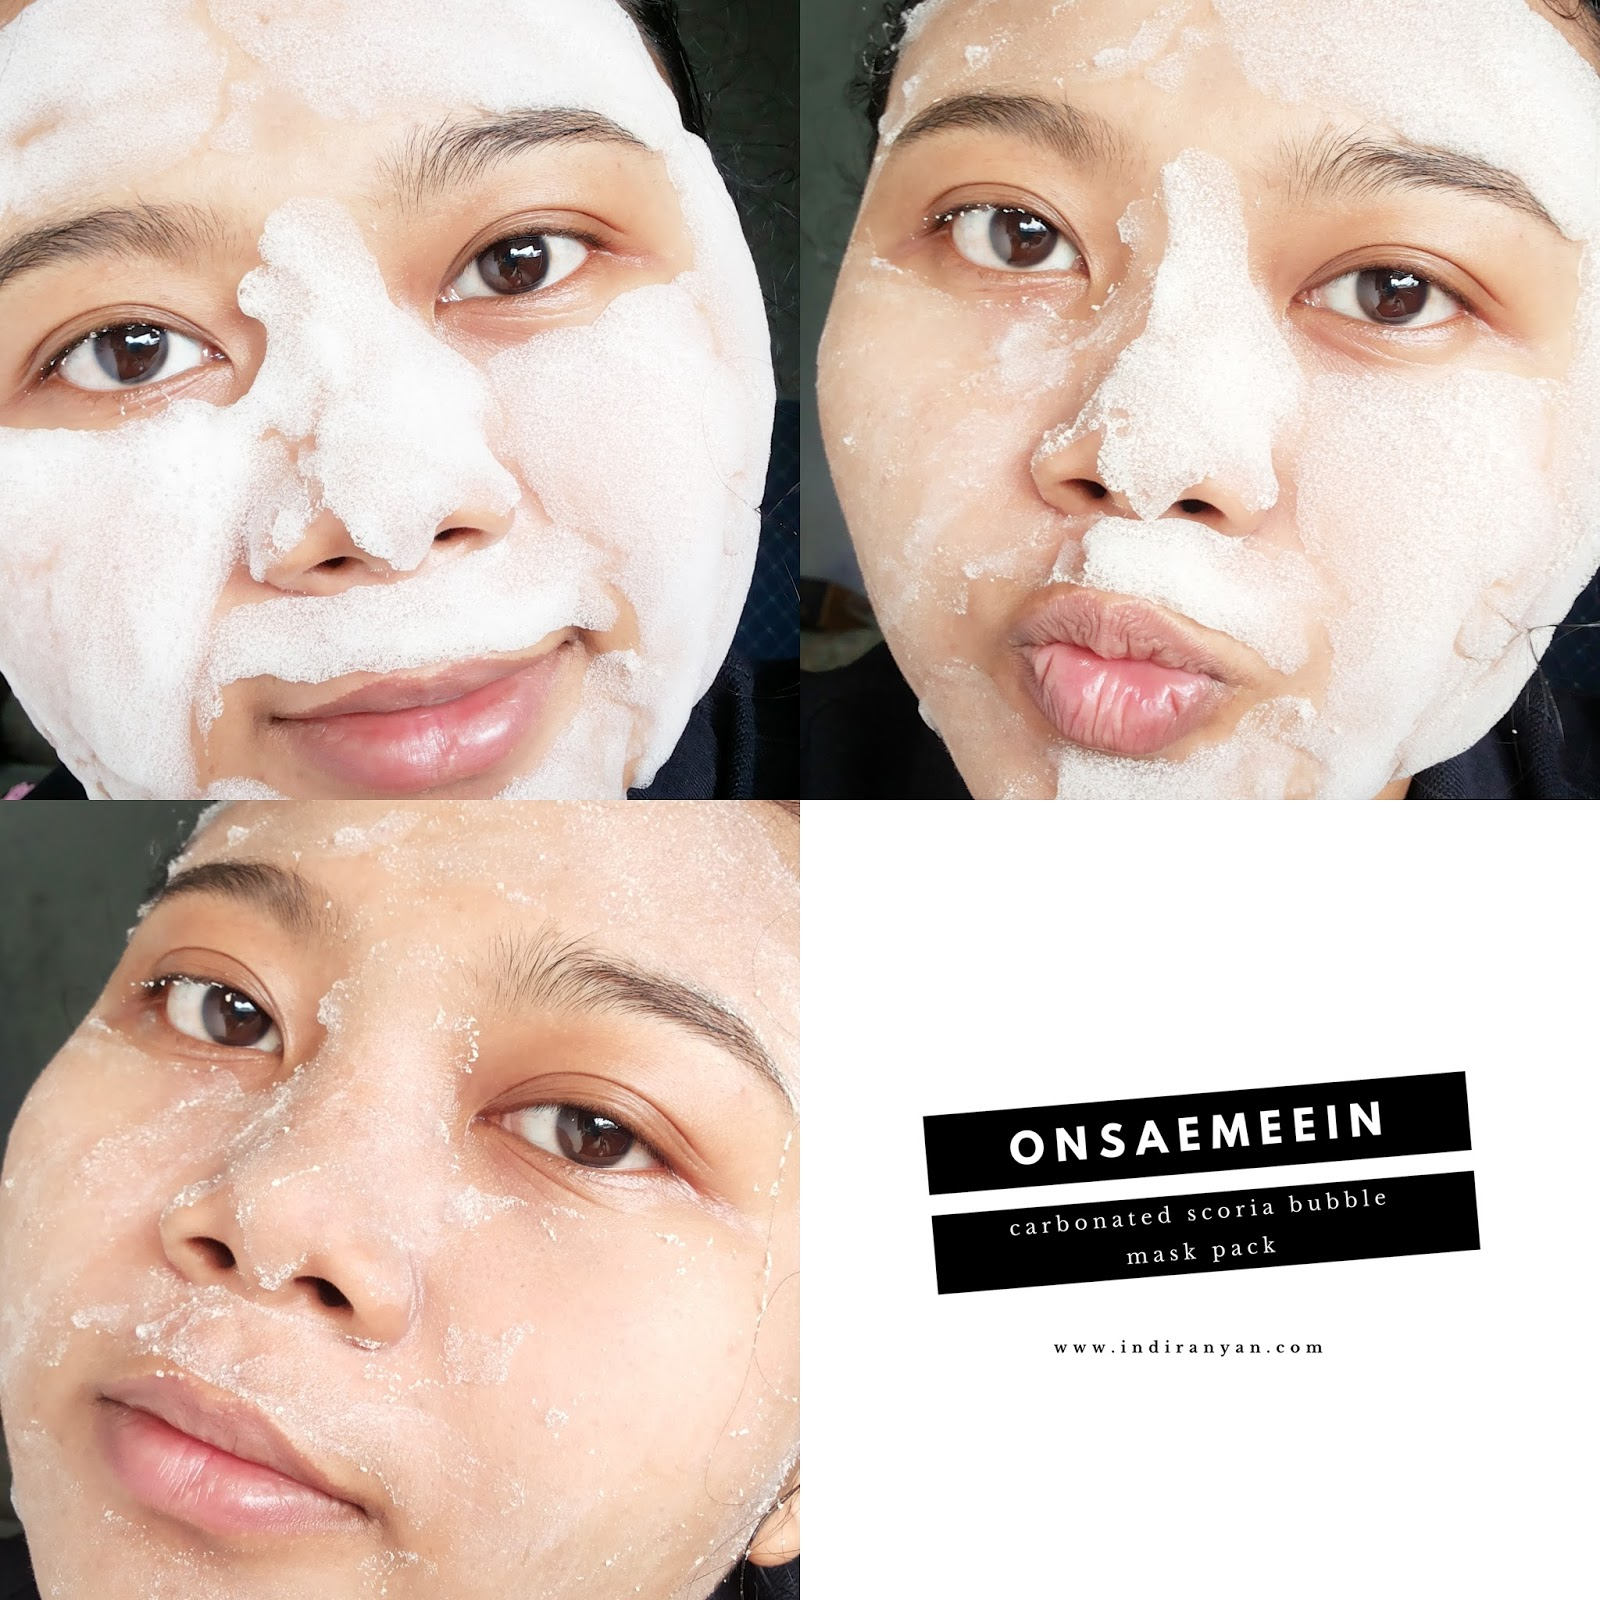 onsaemeein-carbonated-scoria-bubble-mask-pack, review-onsaemeein, review-onsaemeein-carbonated-scoria-bubble-mask-pack